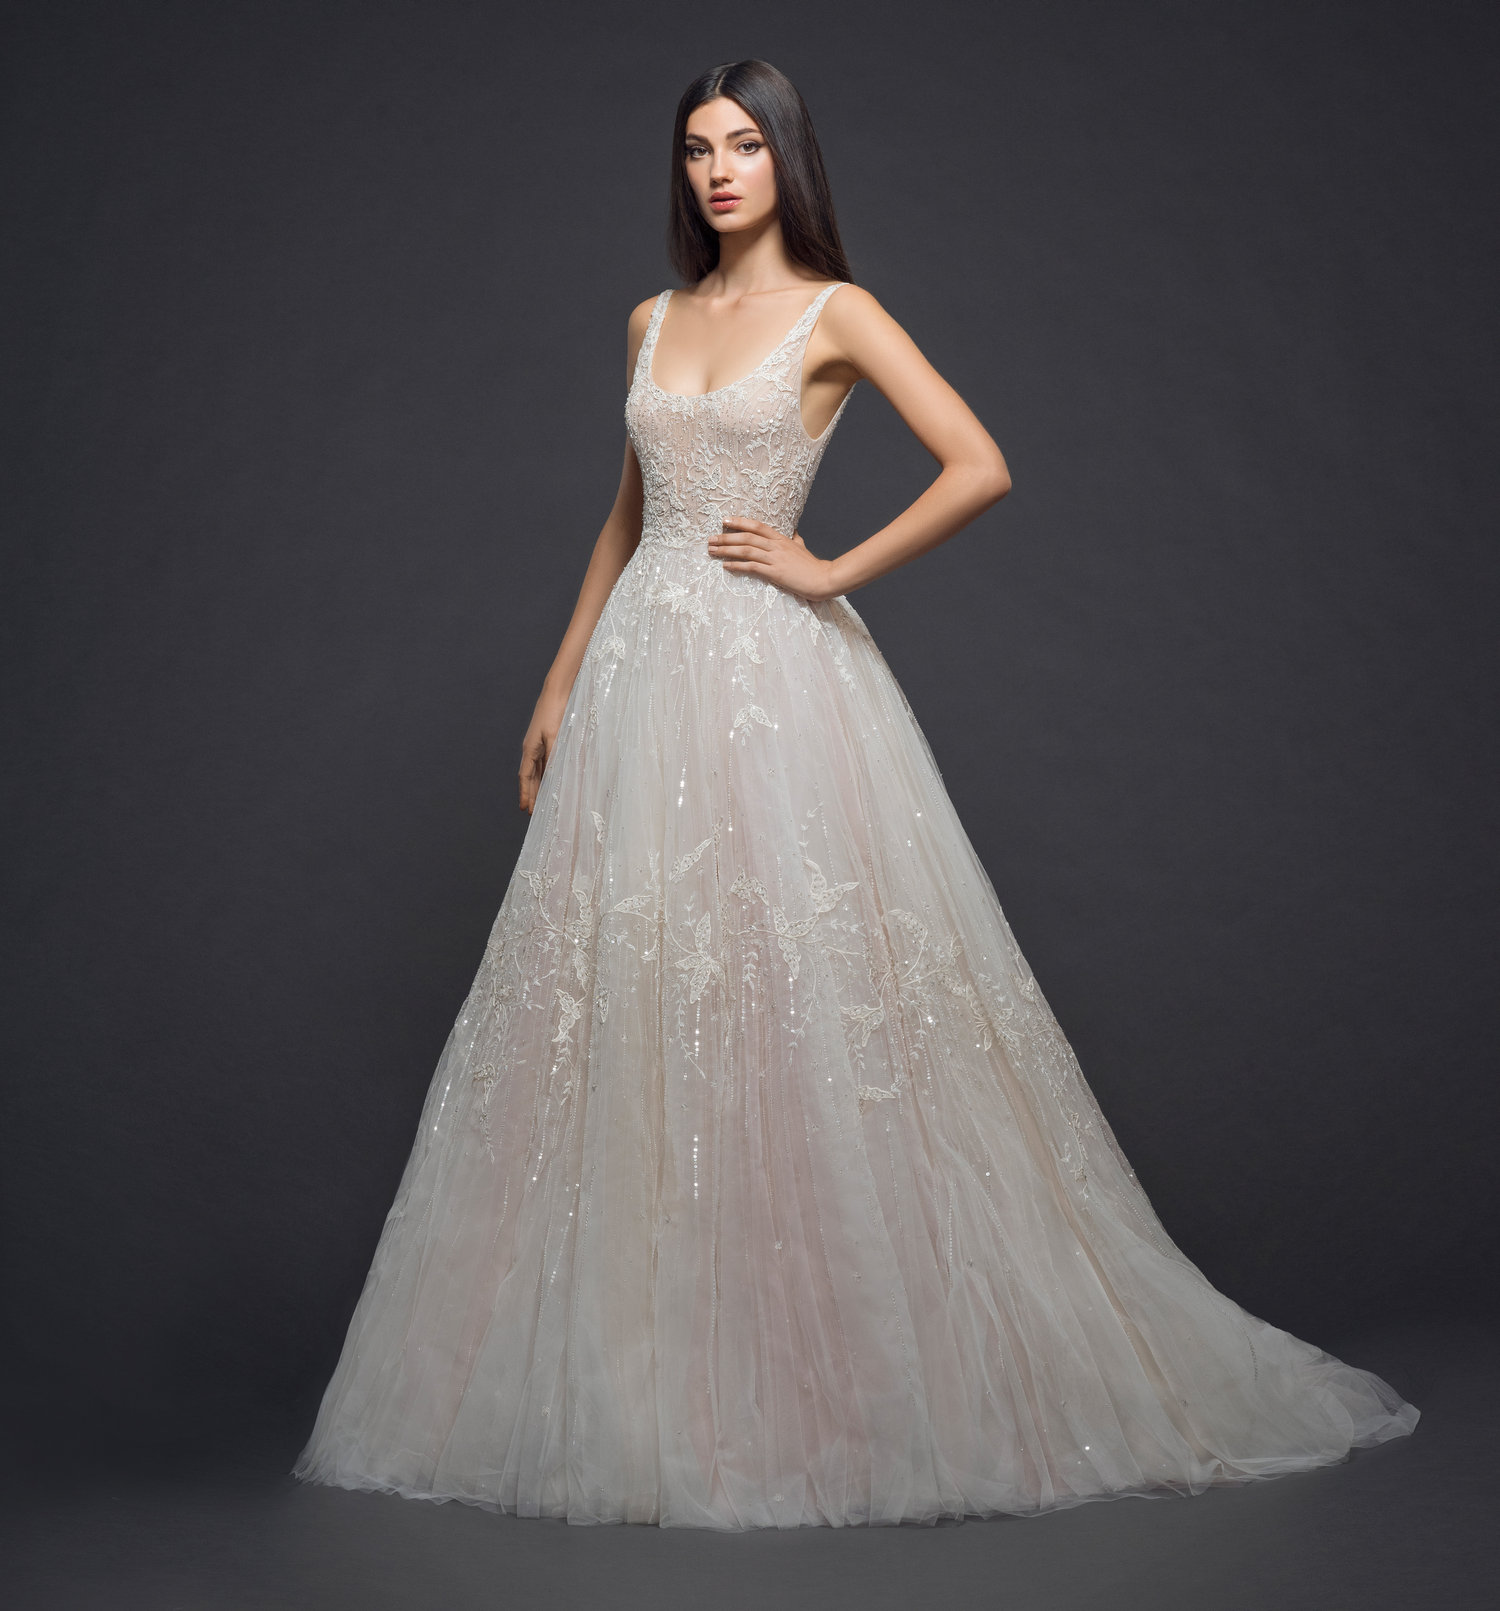 Blush Colored Wedding Dresses Sure to Wow for Valentine\'s Day | JLM ...